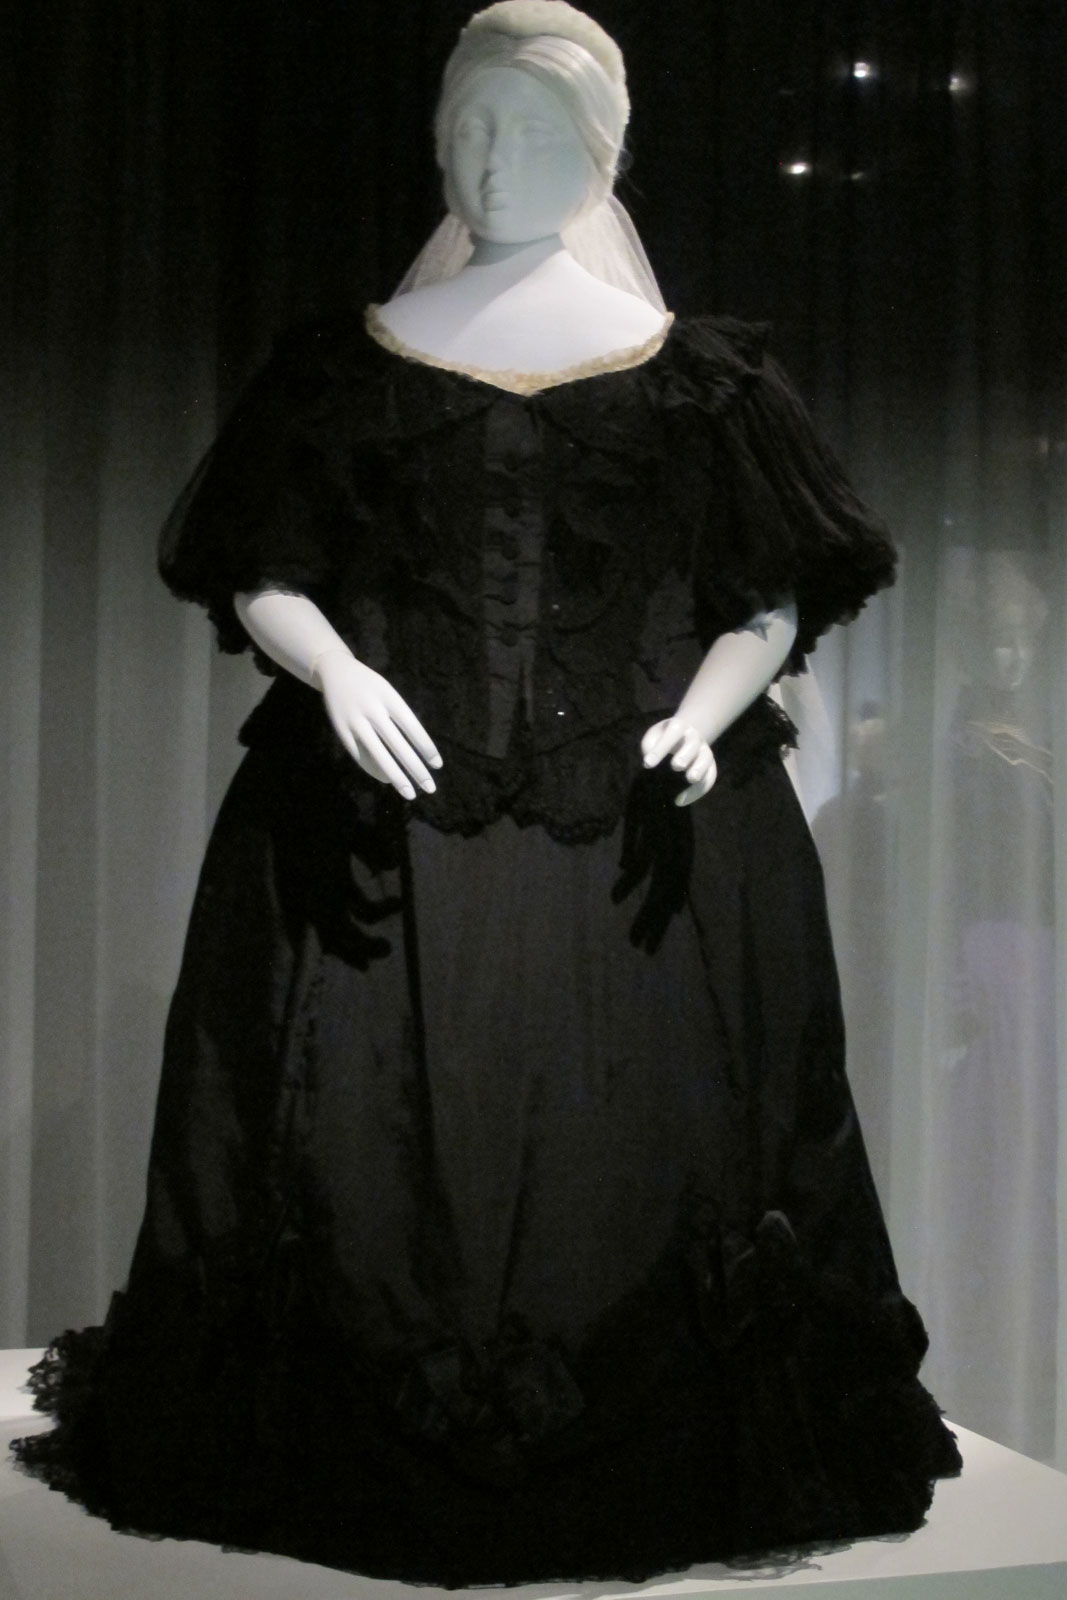 QUEEN VICTORIA MOURNING DRESS In black: silk taffeta, silk ribbon, silk lace, silk crepe, 1894-1895. The two views of Victoria's dress show the magisterial sweep of her gown, as well as the dispensing of forms of corseting that would bind and reshape her fulsome figure. Brooklyn Museum Costume Collection at the Metropolitan Museum of Art.